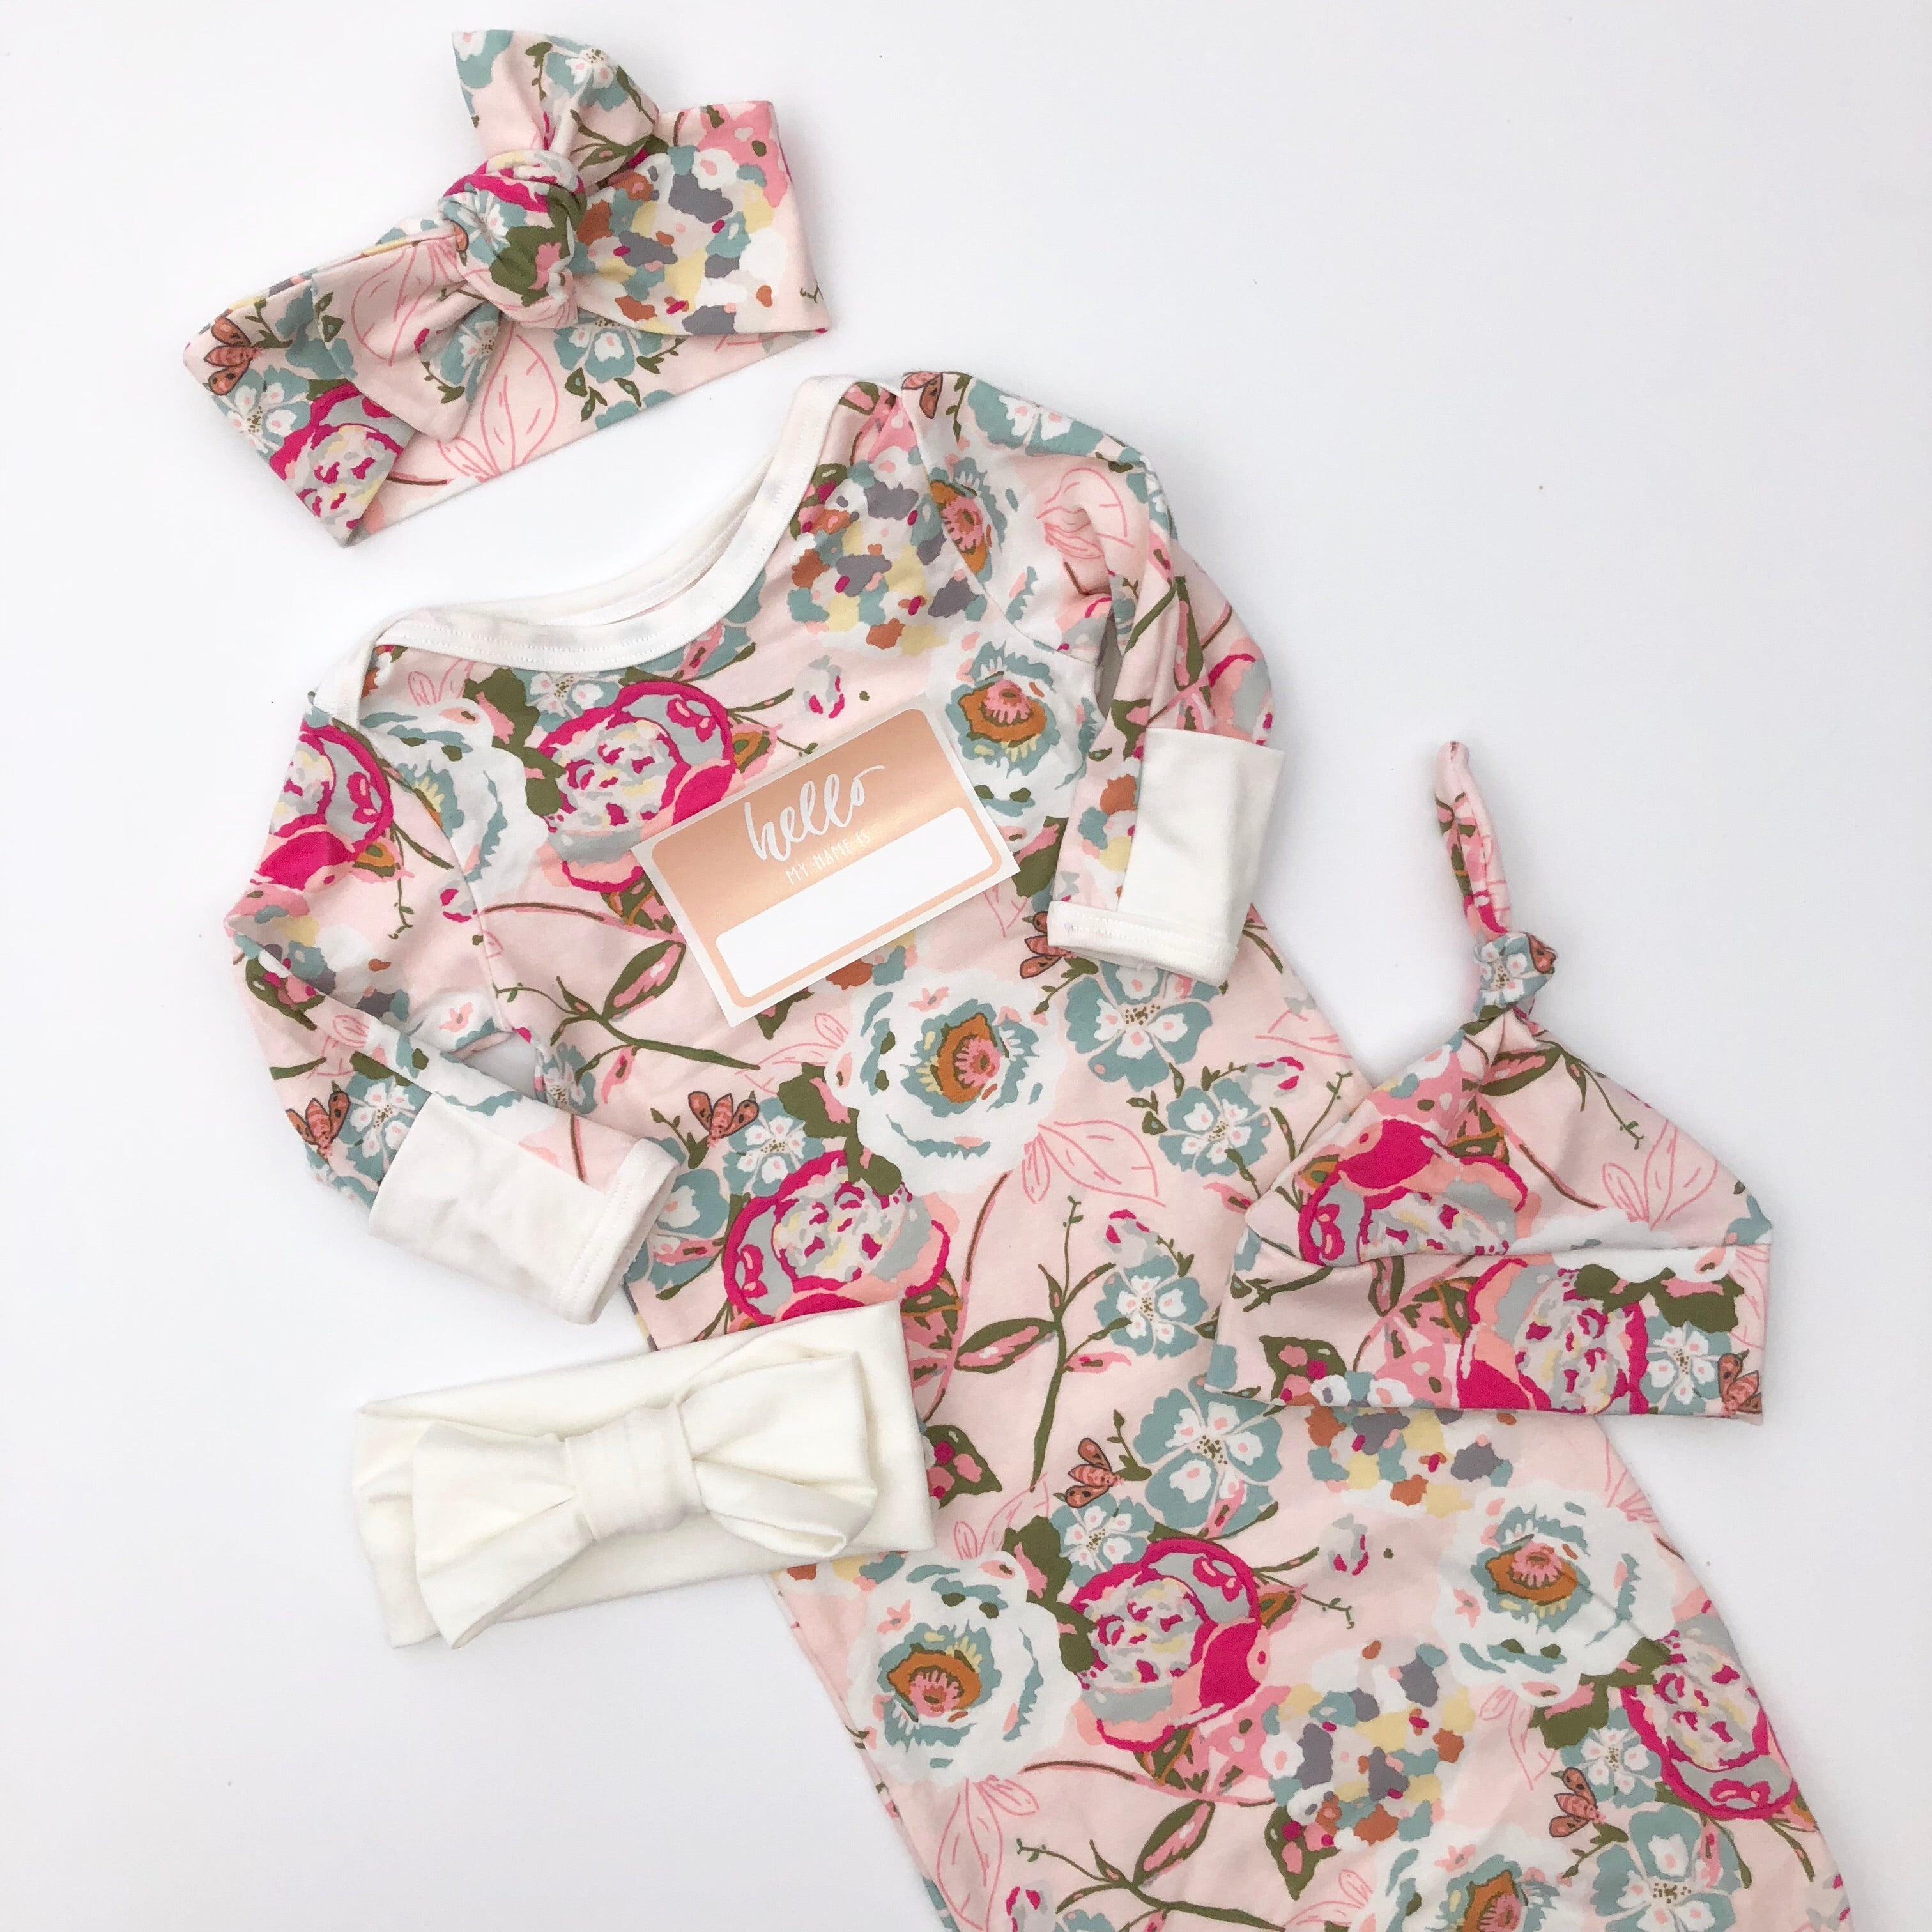 Blooming Garden Layette Gown with Ivory Accents